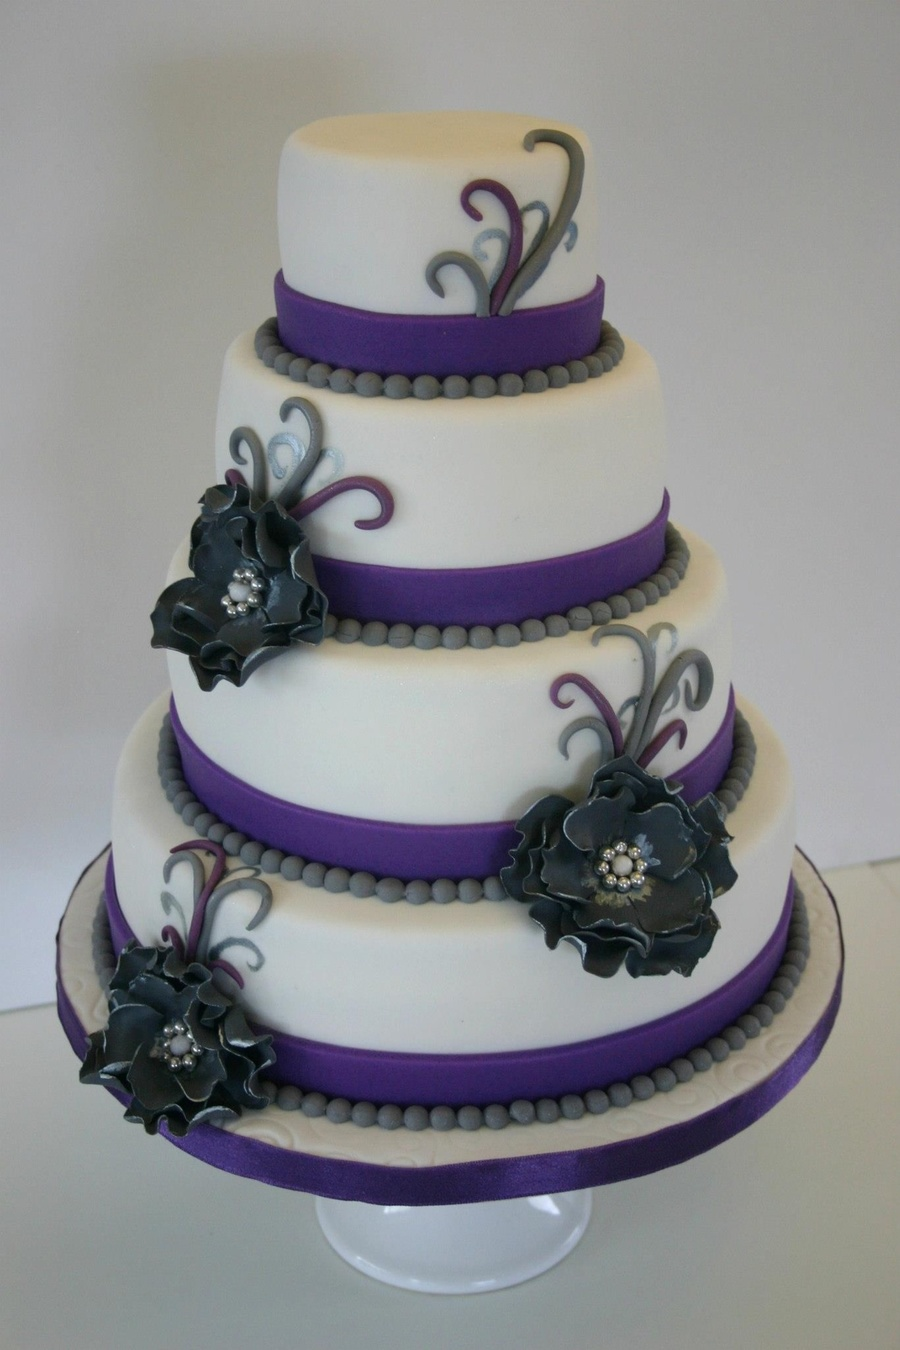 Wedding Cakes All White With Flowers